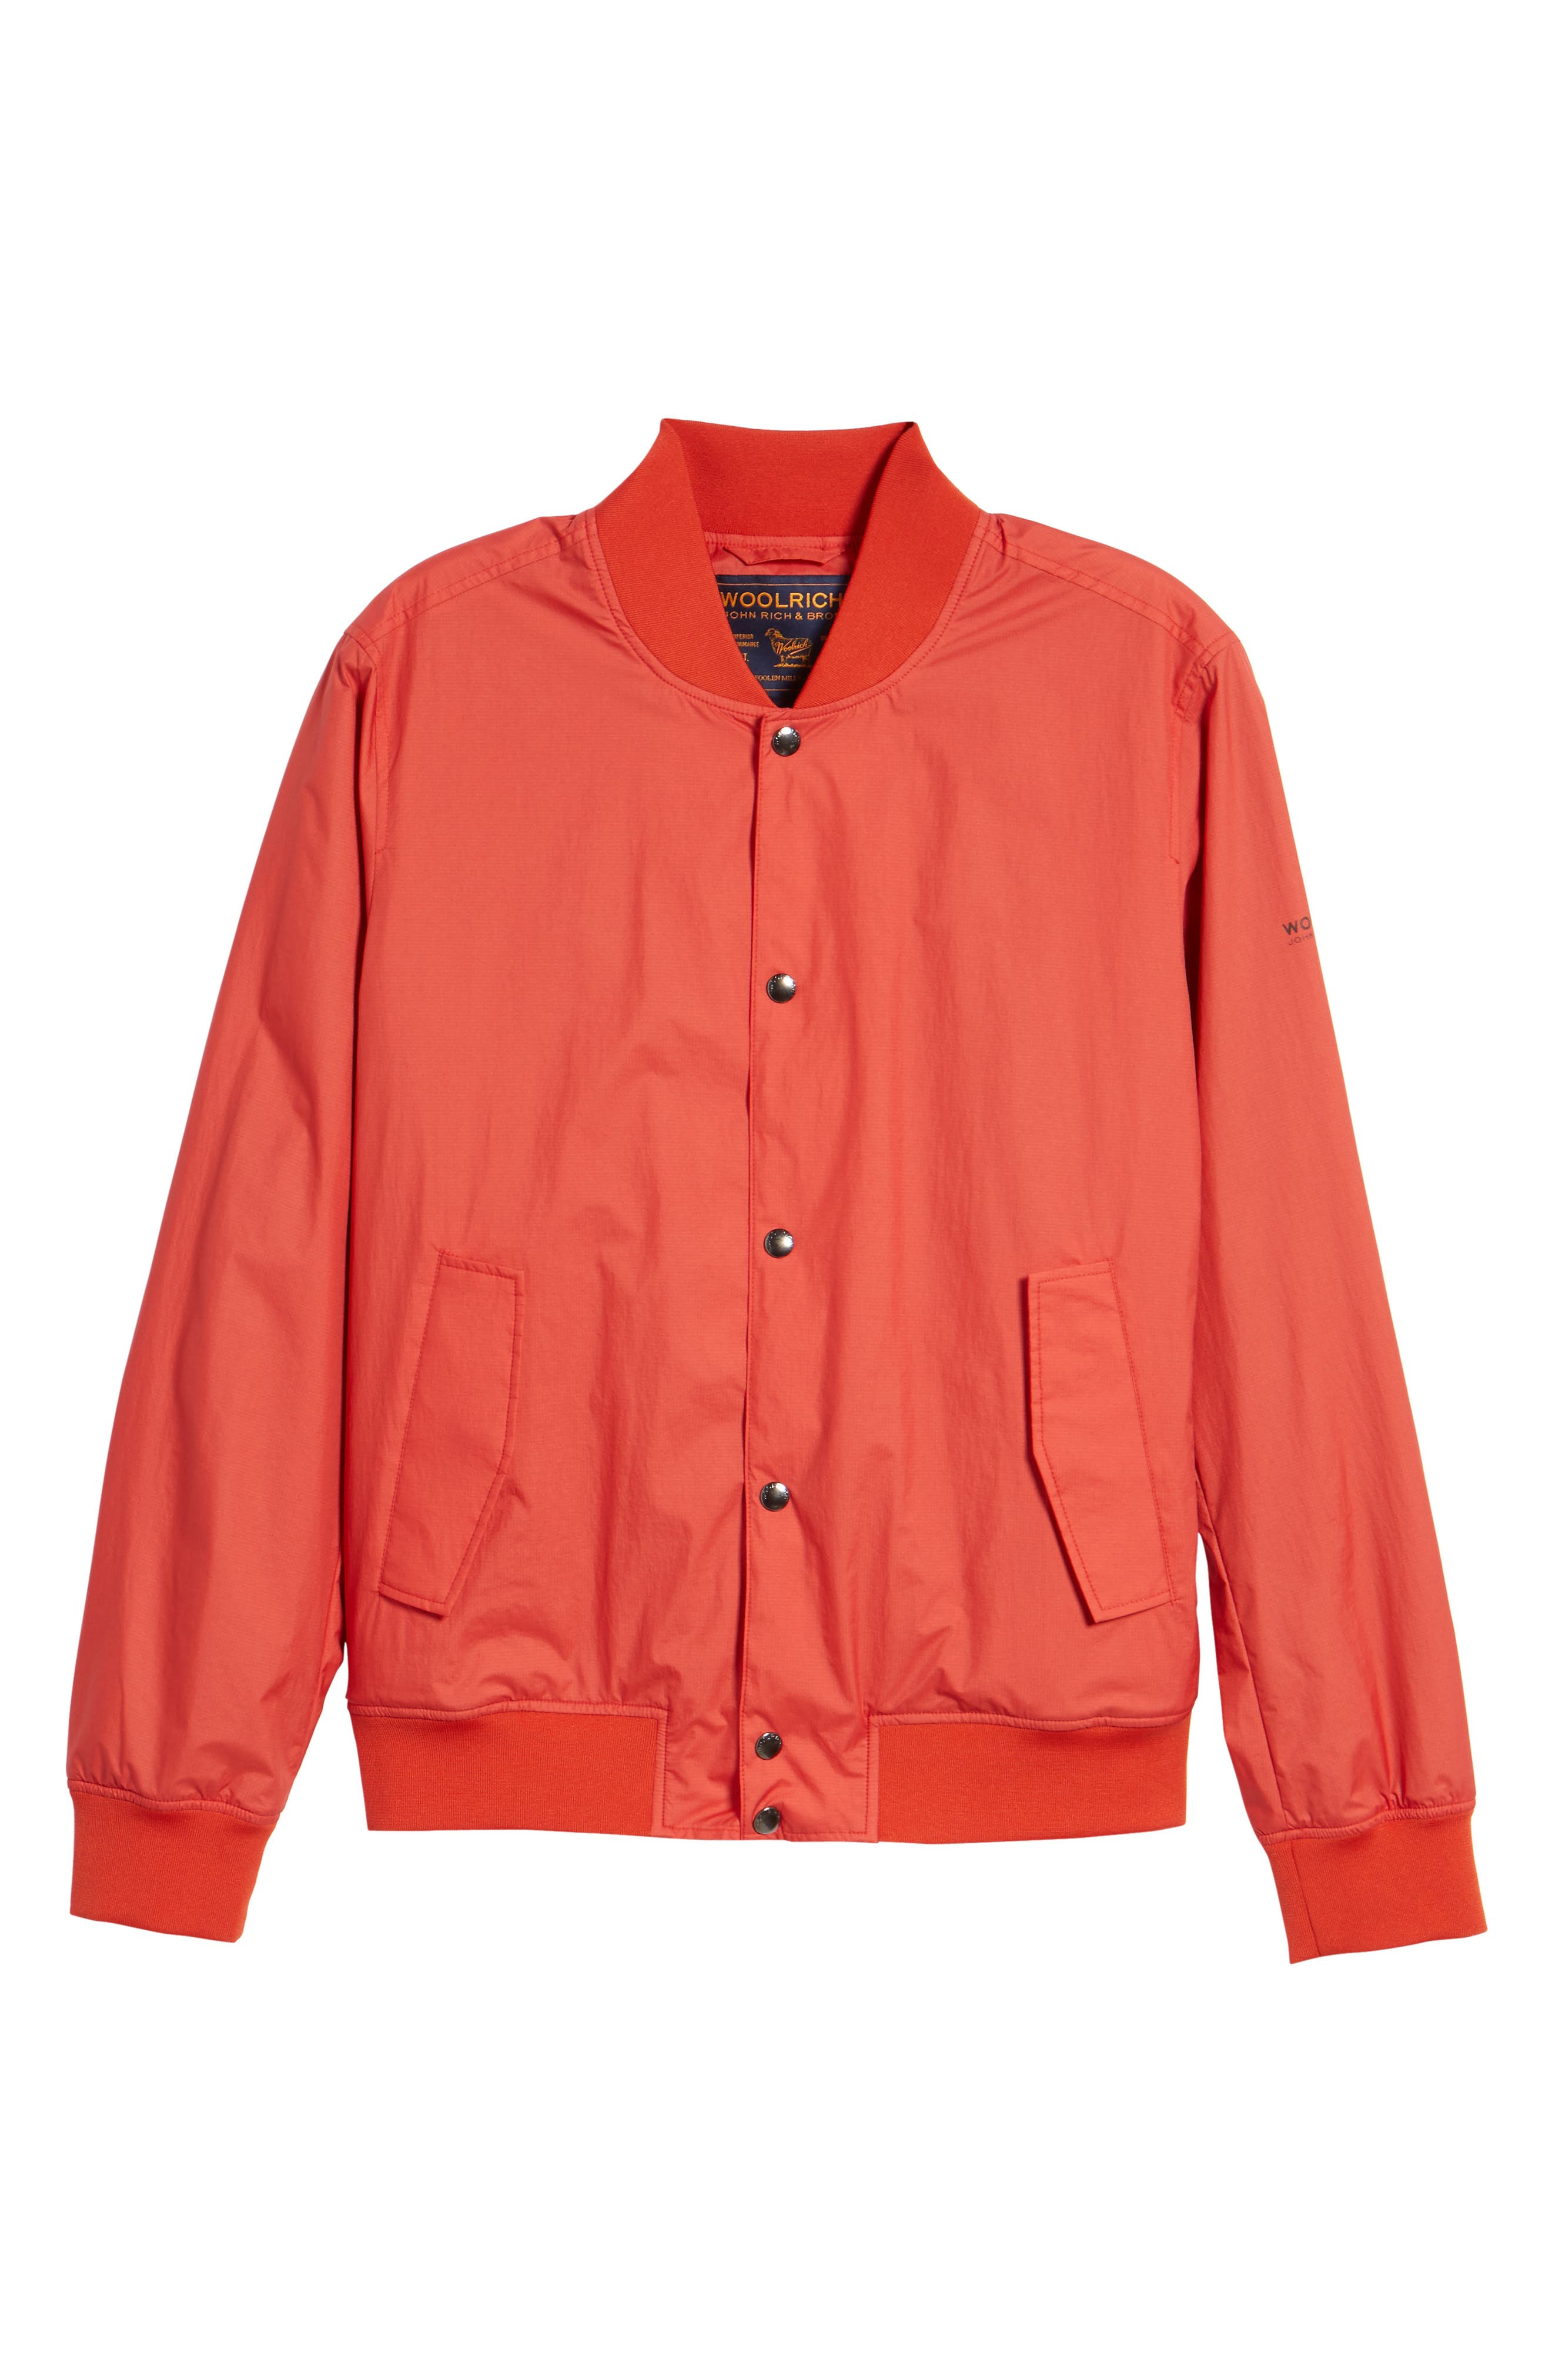 Wallaby Bomber Jacket,                             Alternate thumbnail 6, color,                             Aurora Red